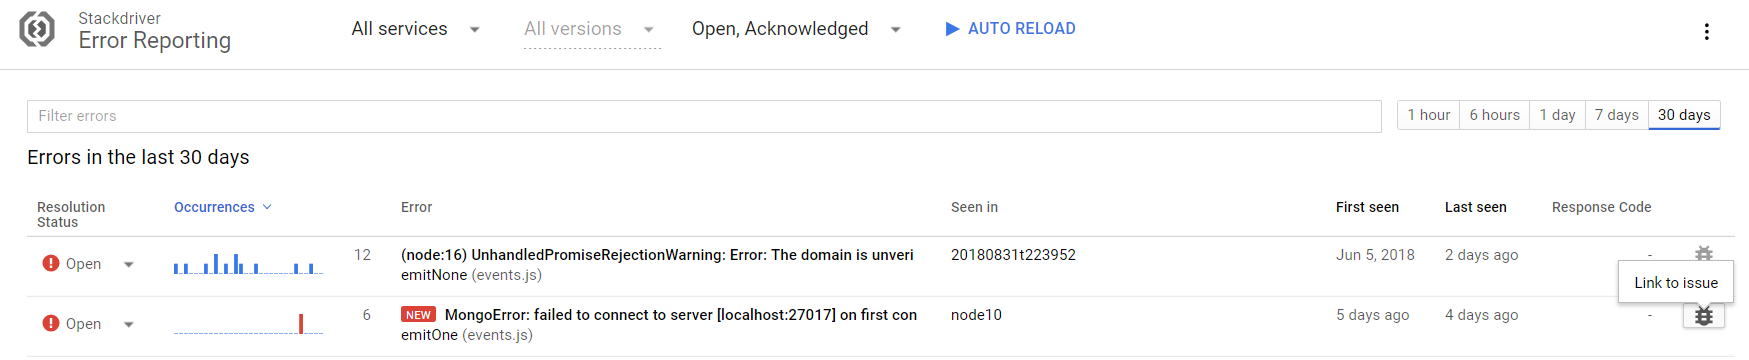 stackdriver email notification